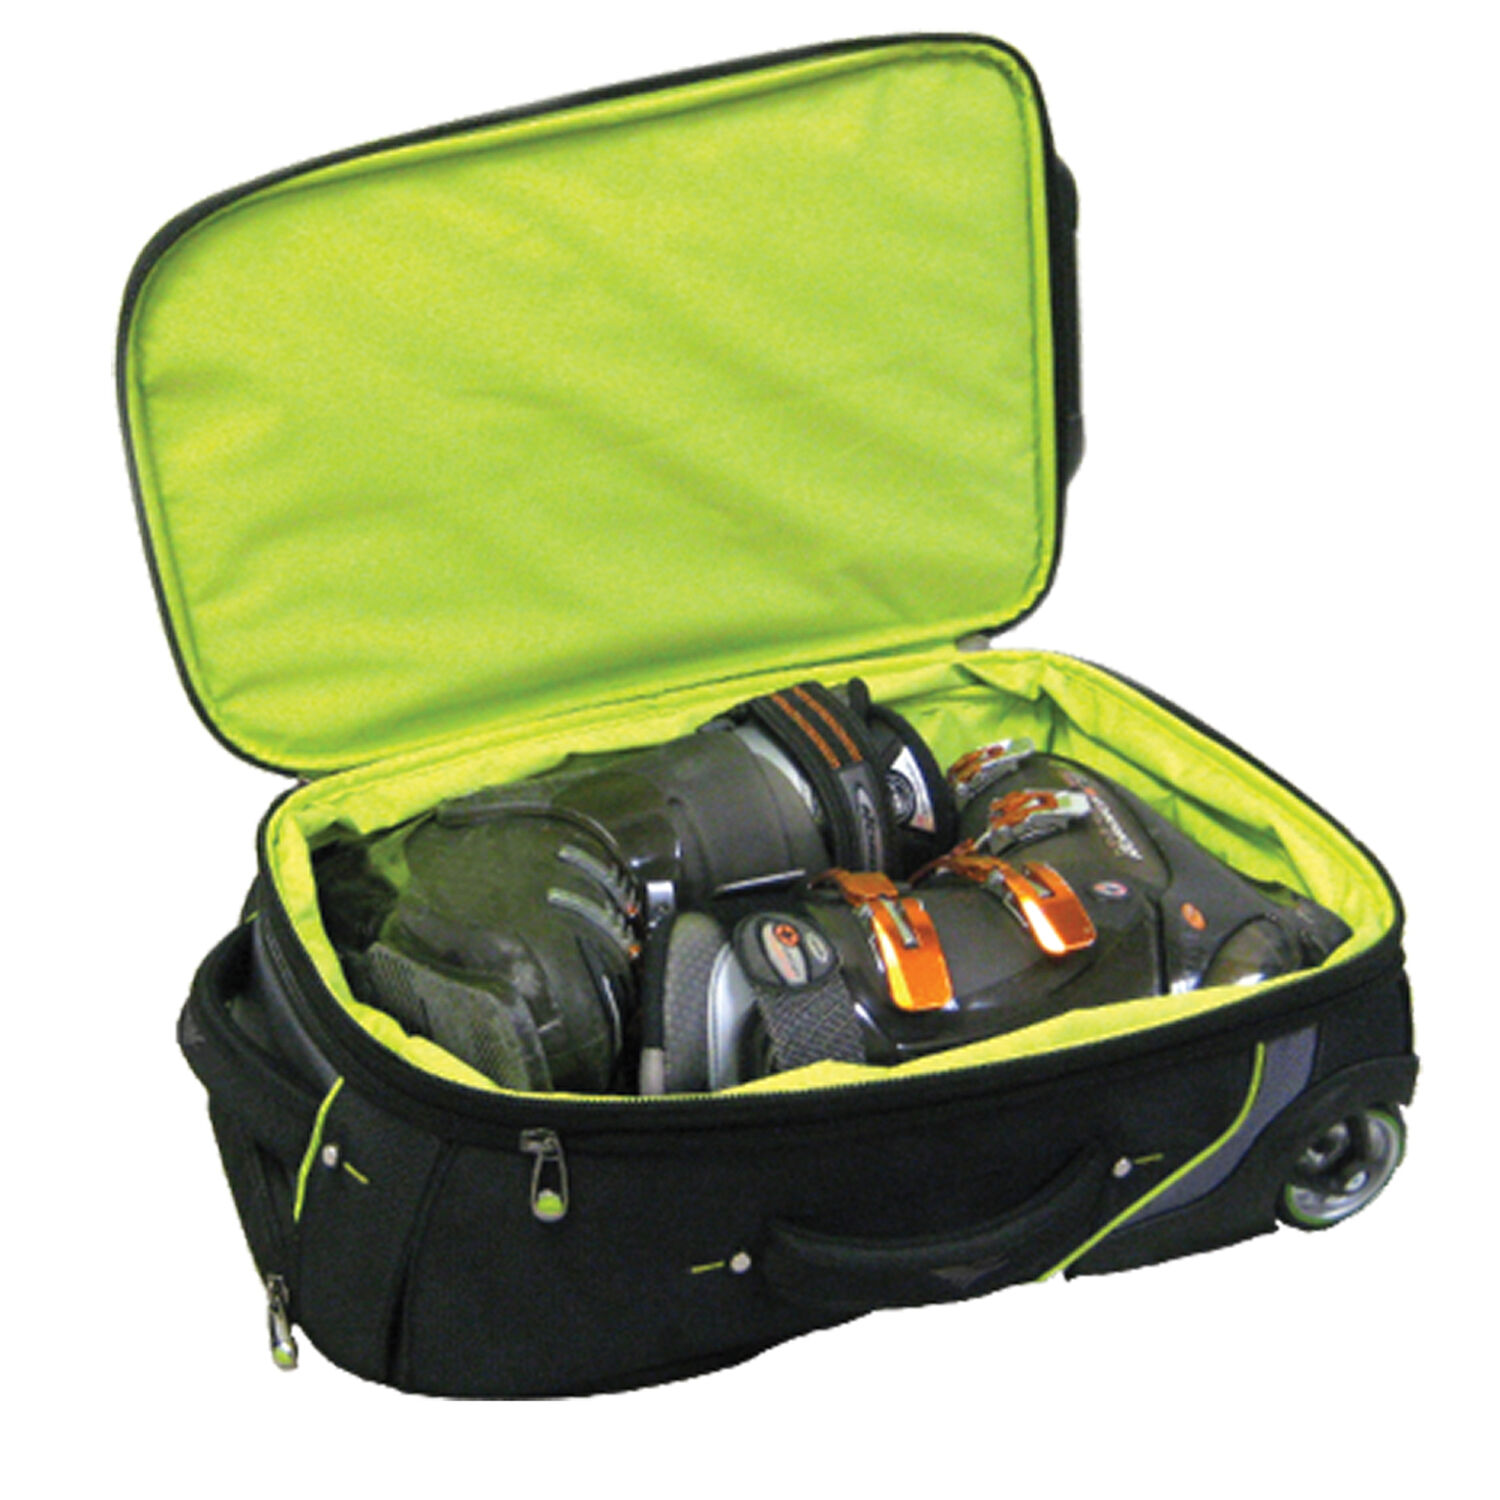 5d9788dcd4 High Sierra Wheeled Carry-On Boot Bag in the color Black Charcoal Chartreuse